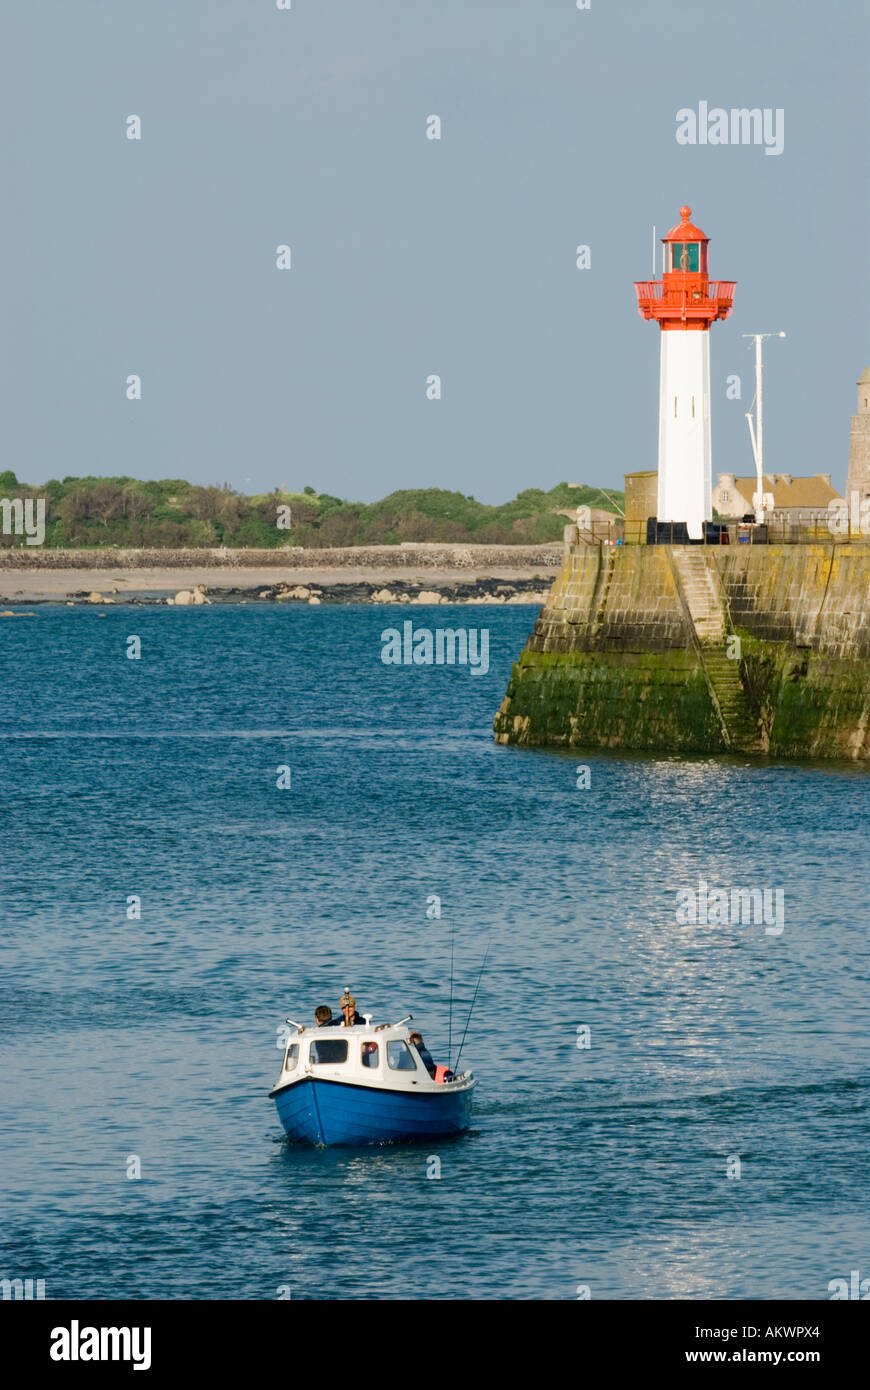 France, Normandy, St Vaast La Hougue, Harbor with lighthouse Stock Photo